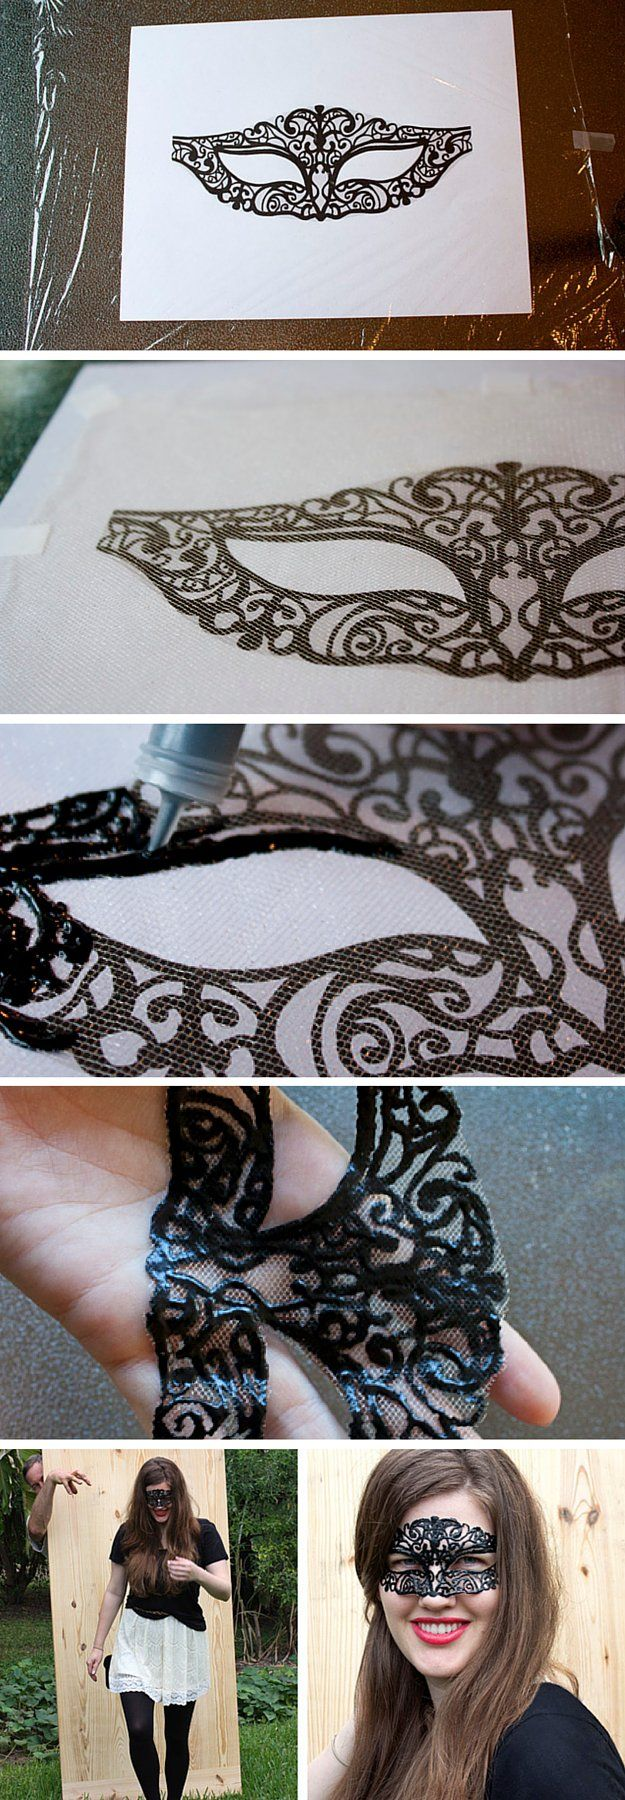 Lacey Mardi Gras Mask | Learn How To Make A Festive Mask With These 7 Easy DIY Mardi Gras Masks Tutorials by DIY Ready at http://diyready.com/7-diy-mardi-gras-masks-diy-tutorials/